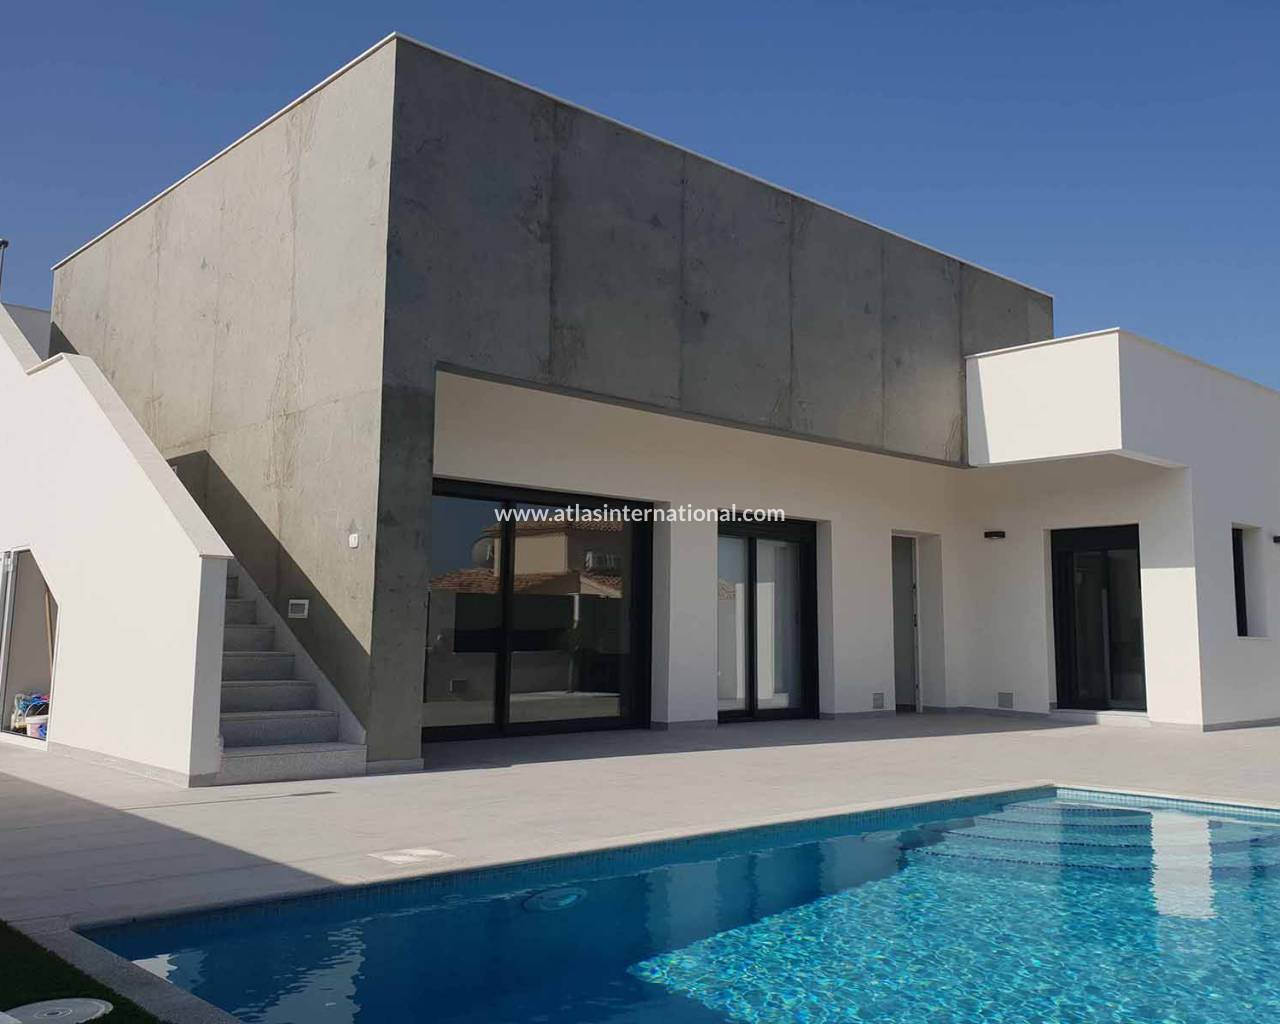 Detached Villa - New Build - Pilar de la horadada - Pinar de Campoverde